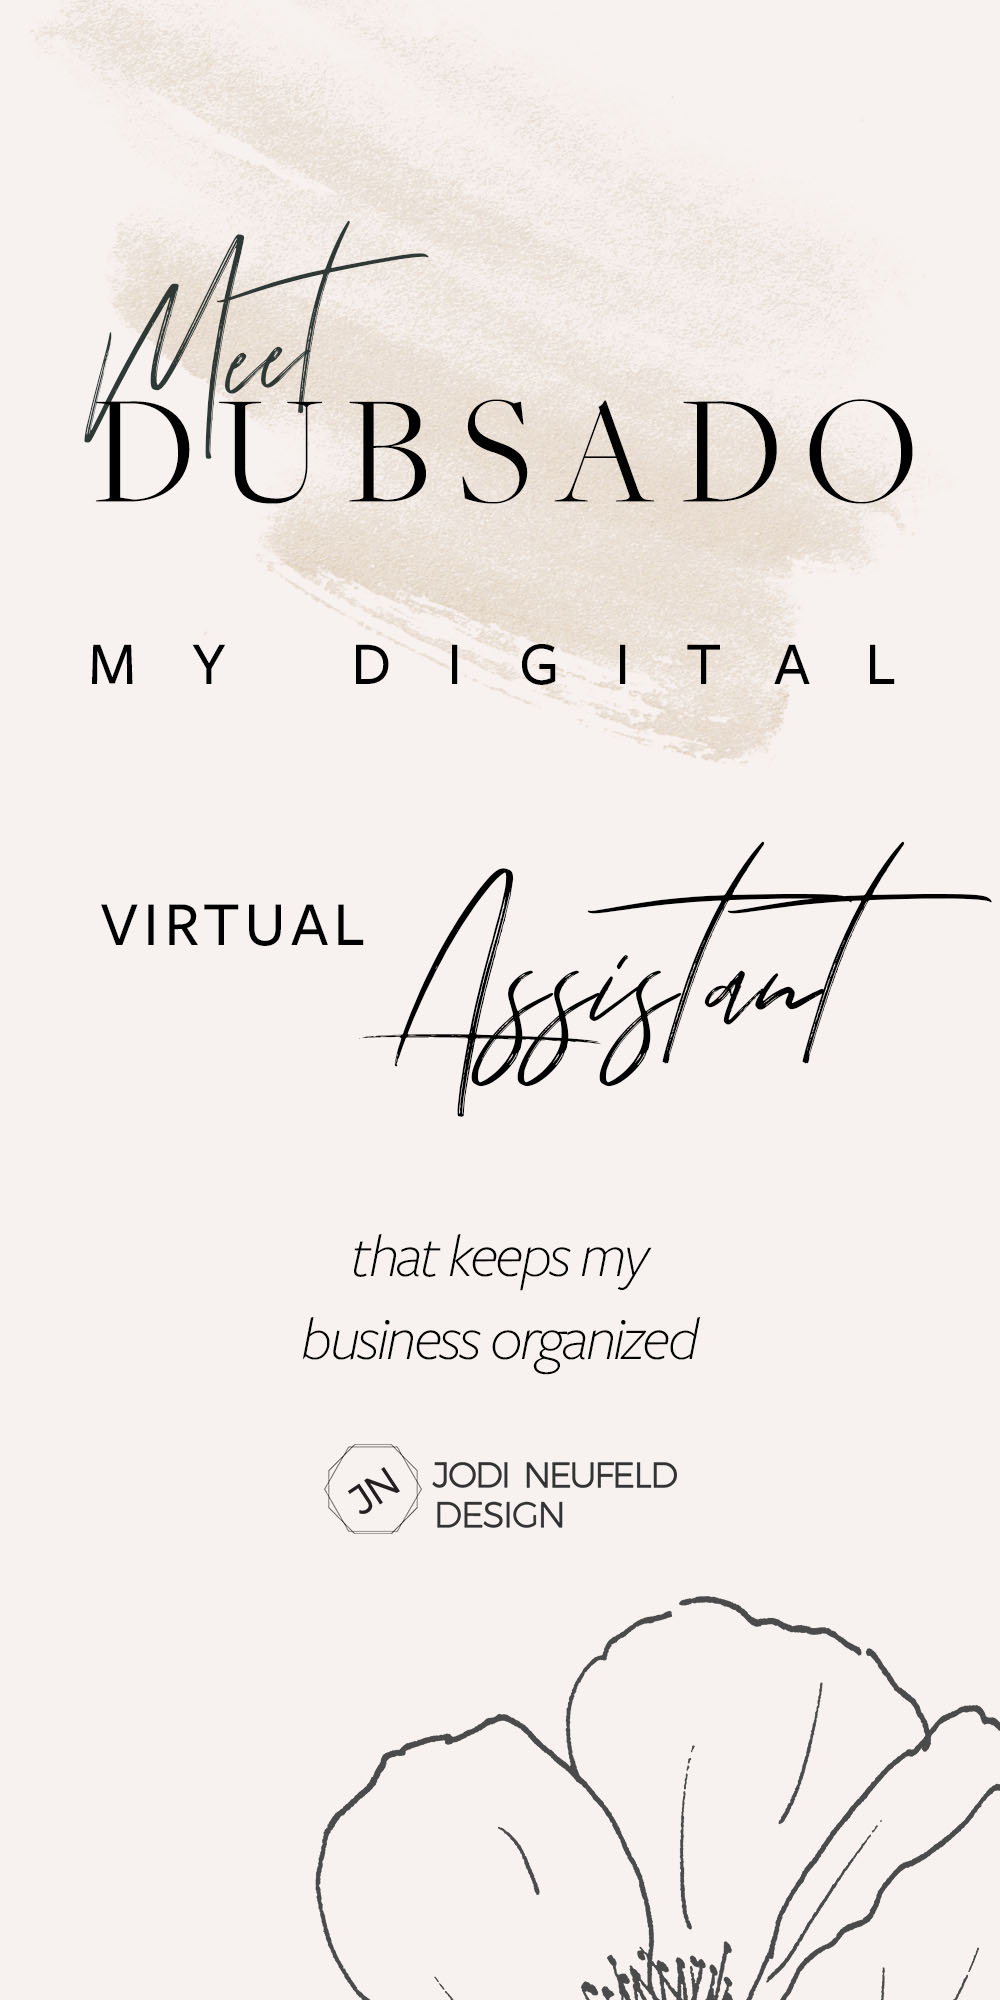 Meet Dubsado by Jodi Neufeld Design - my digital virtual assistant.jpg